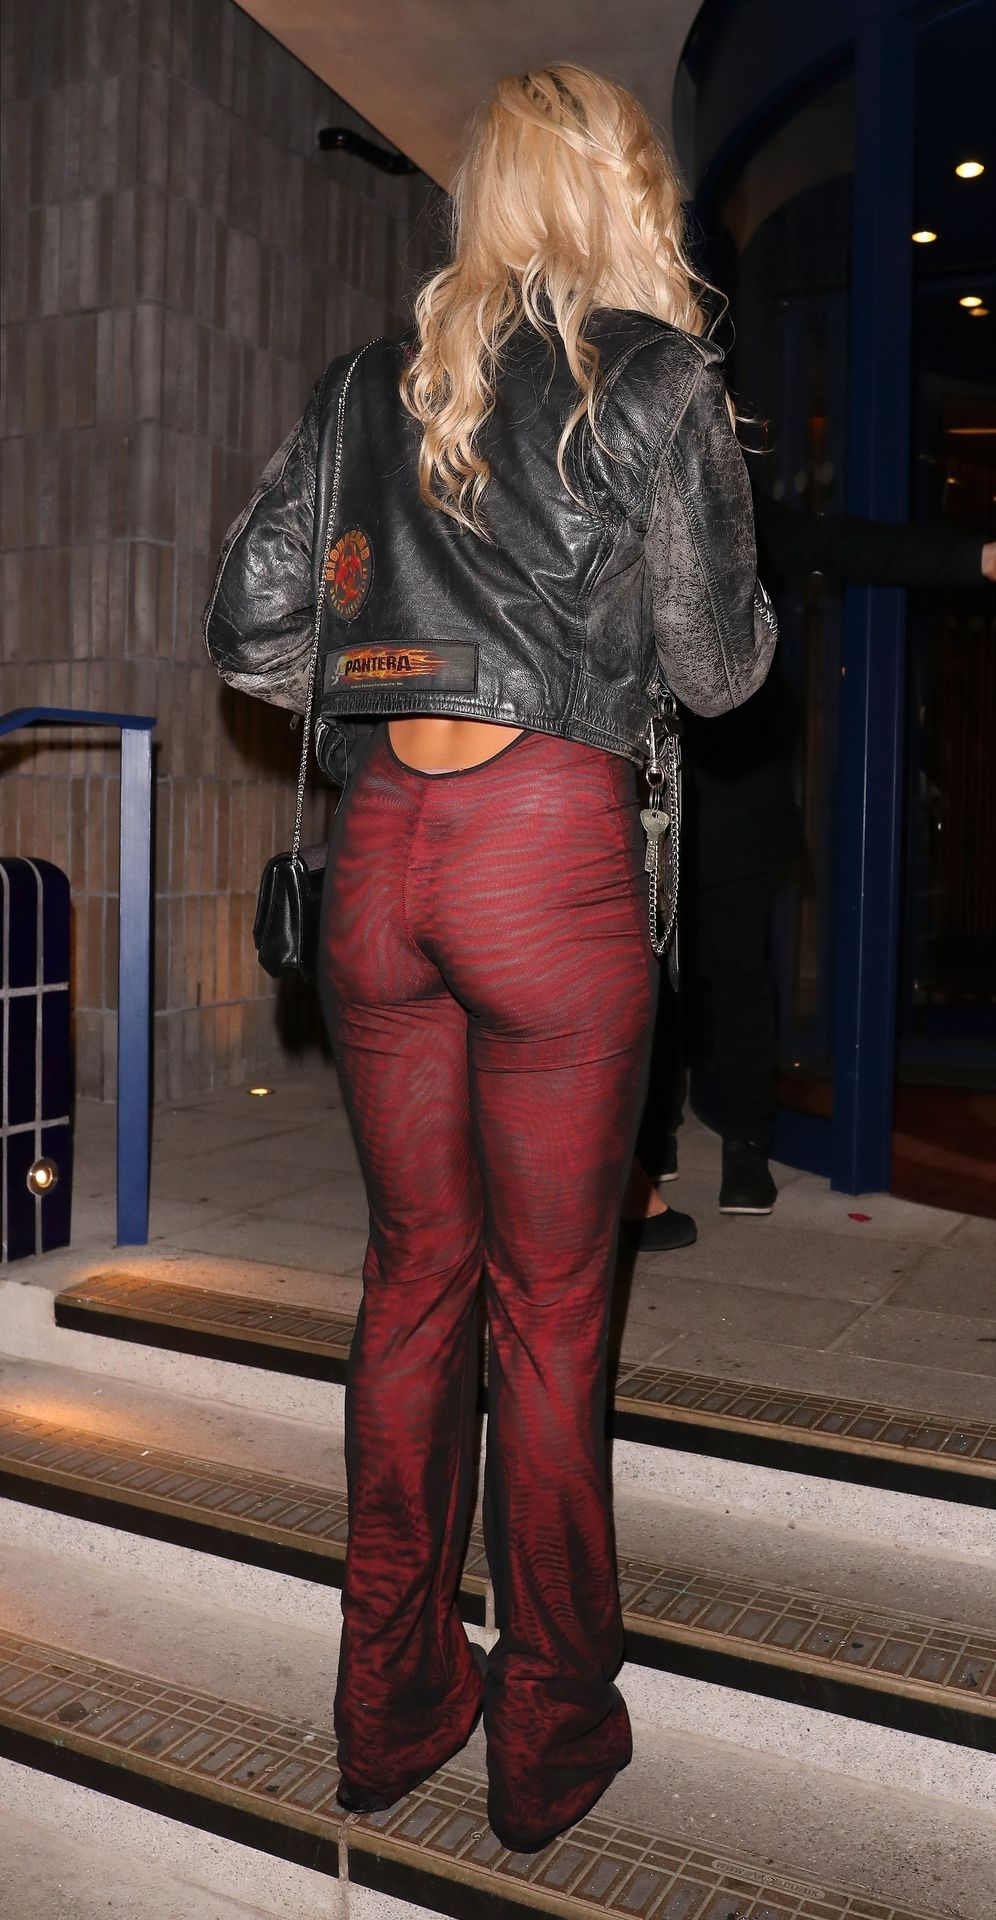 Alice Dellal Shows Her Tits at the NME Awards After Party (25 Photos)